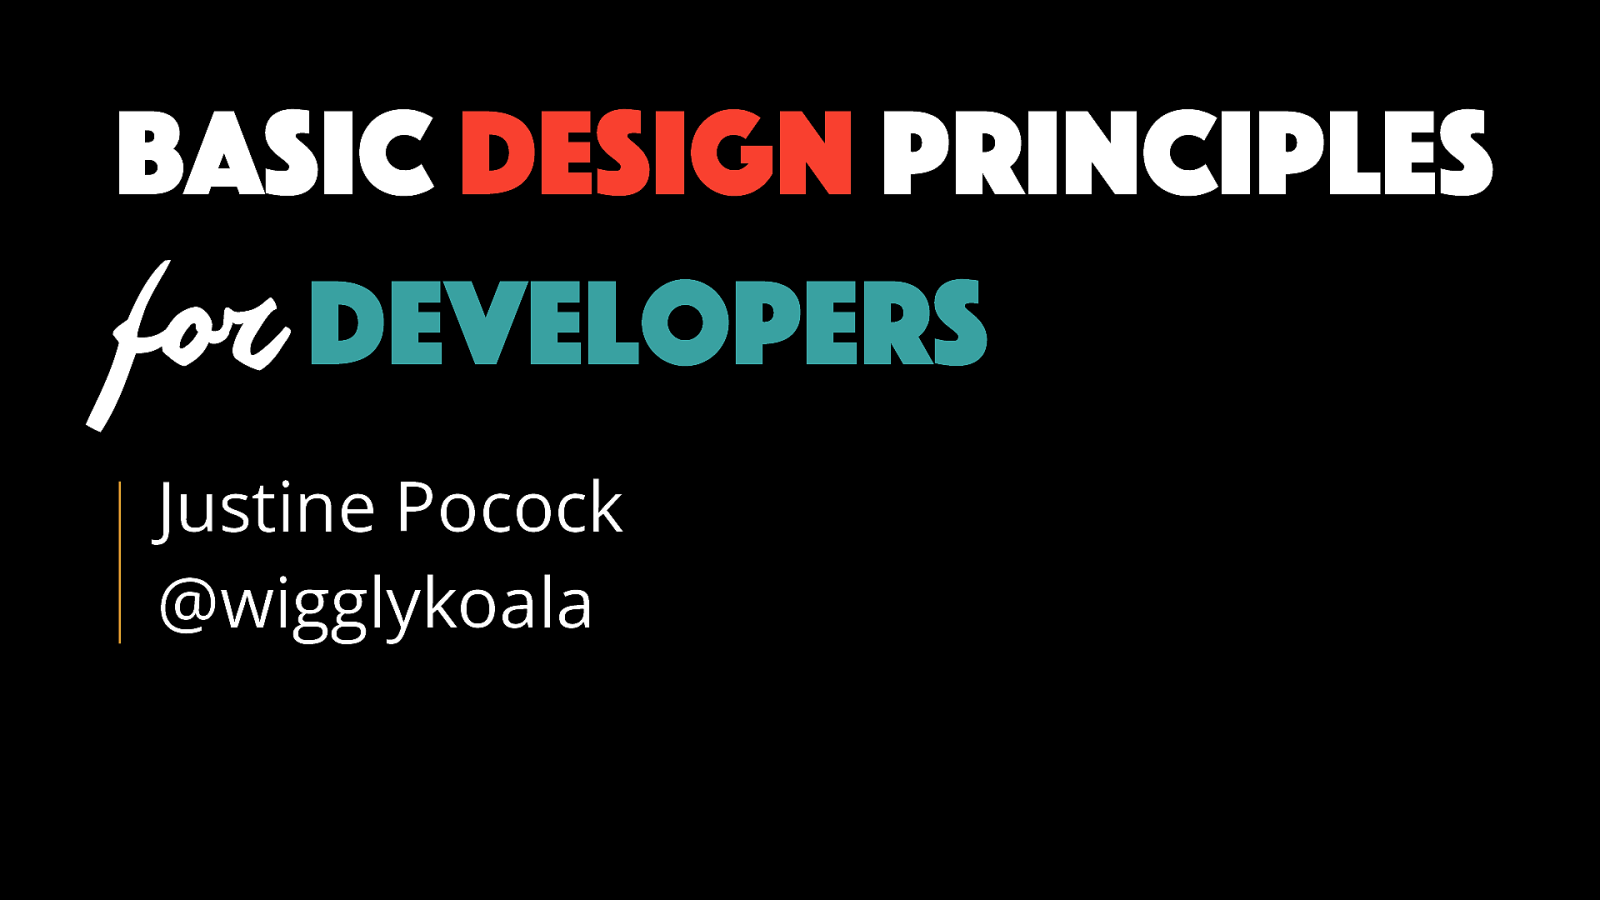 Basic design principles for developers